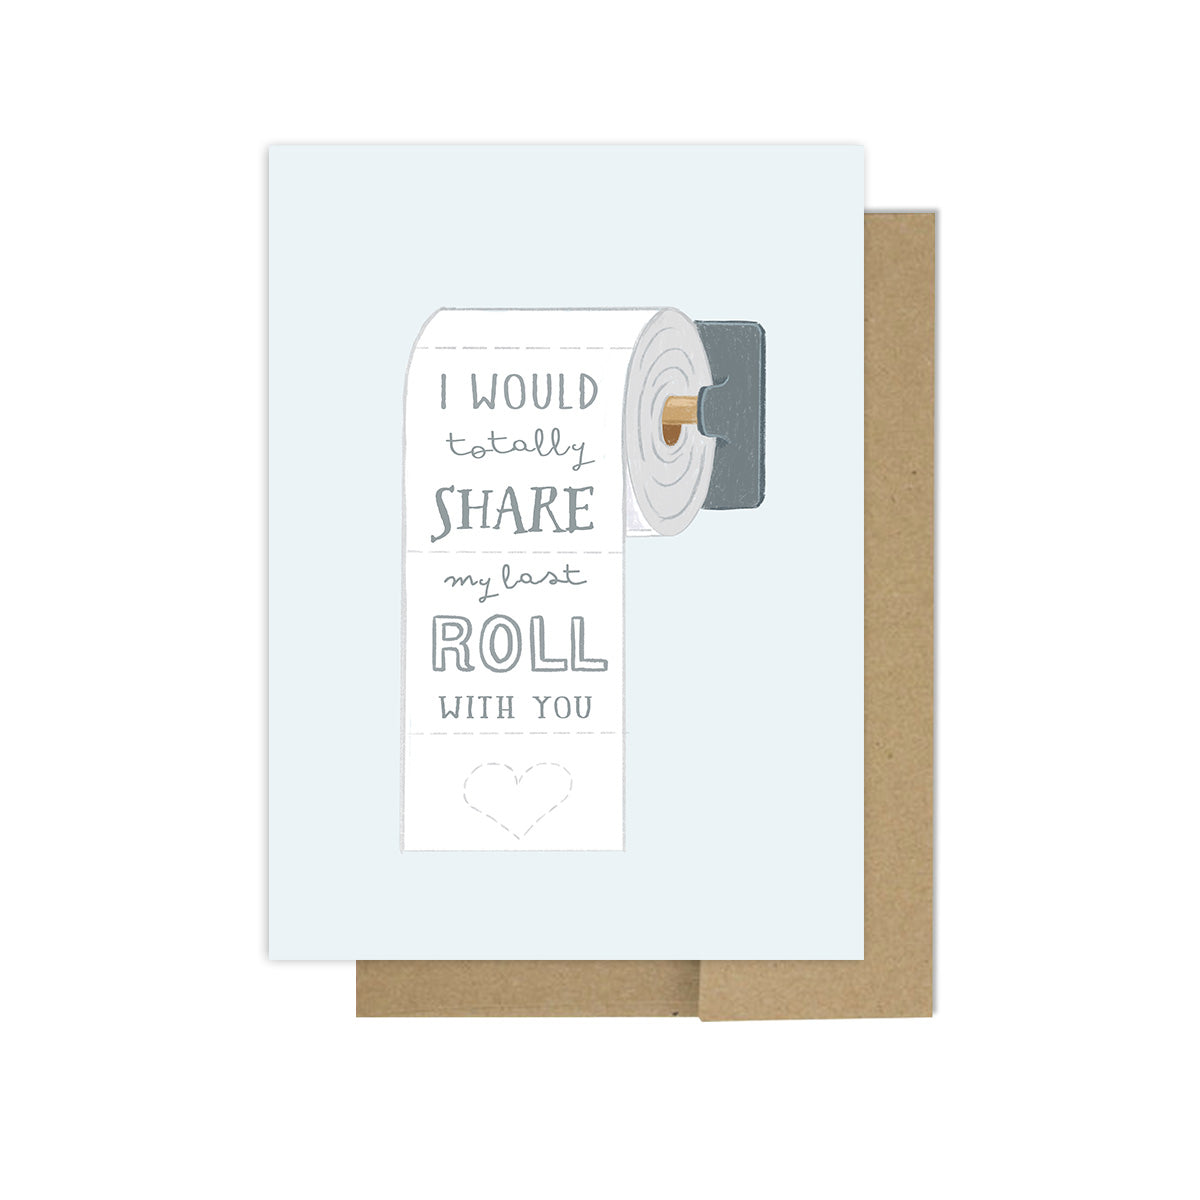 Share The Roll - Greeting Card